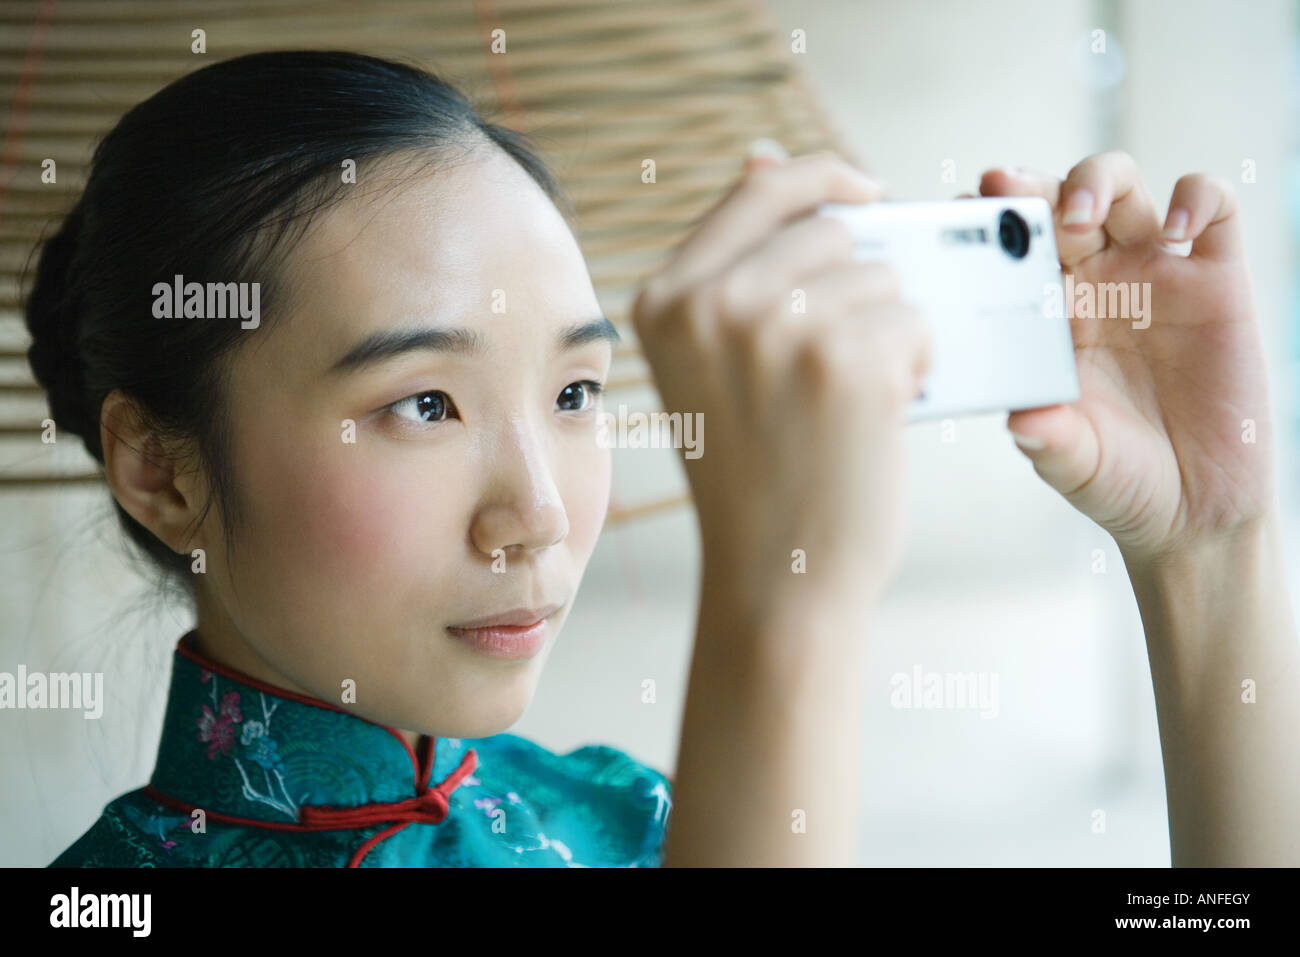 Young woman wearing traditional Chinese clothing, taking photo with digital camera - Stock Image